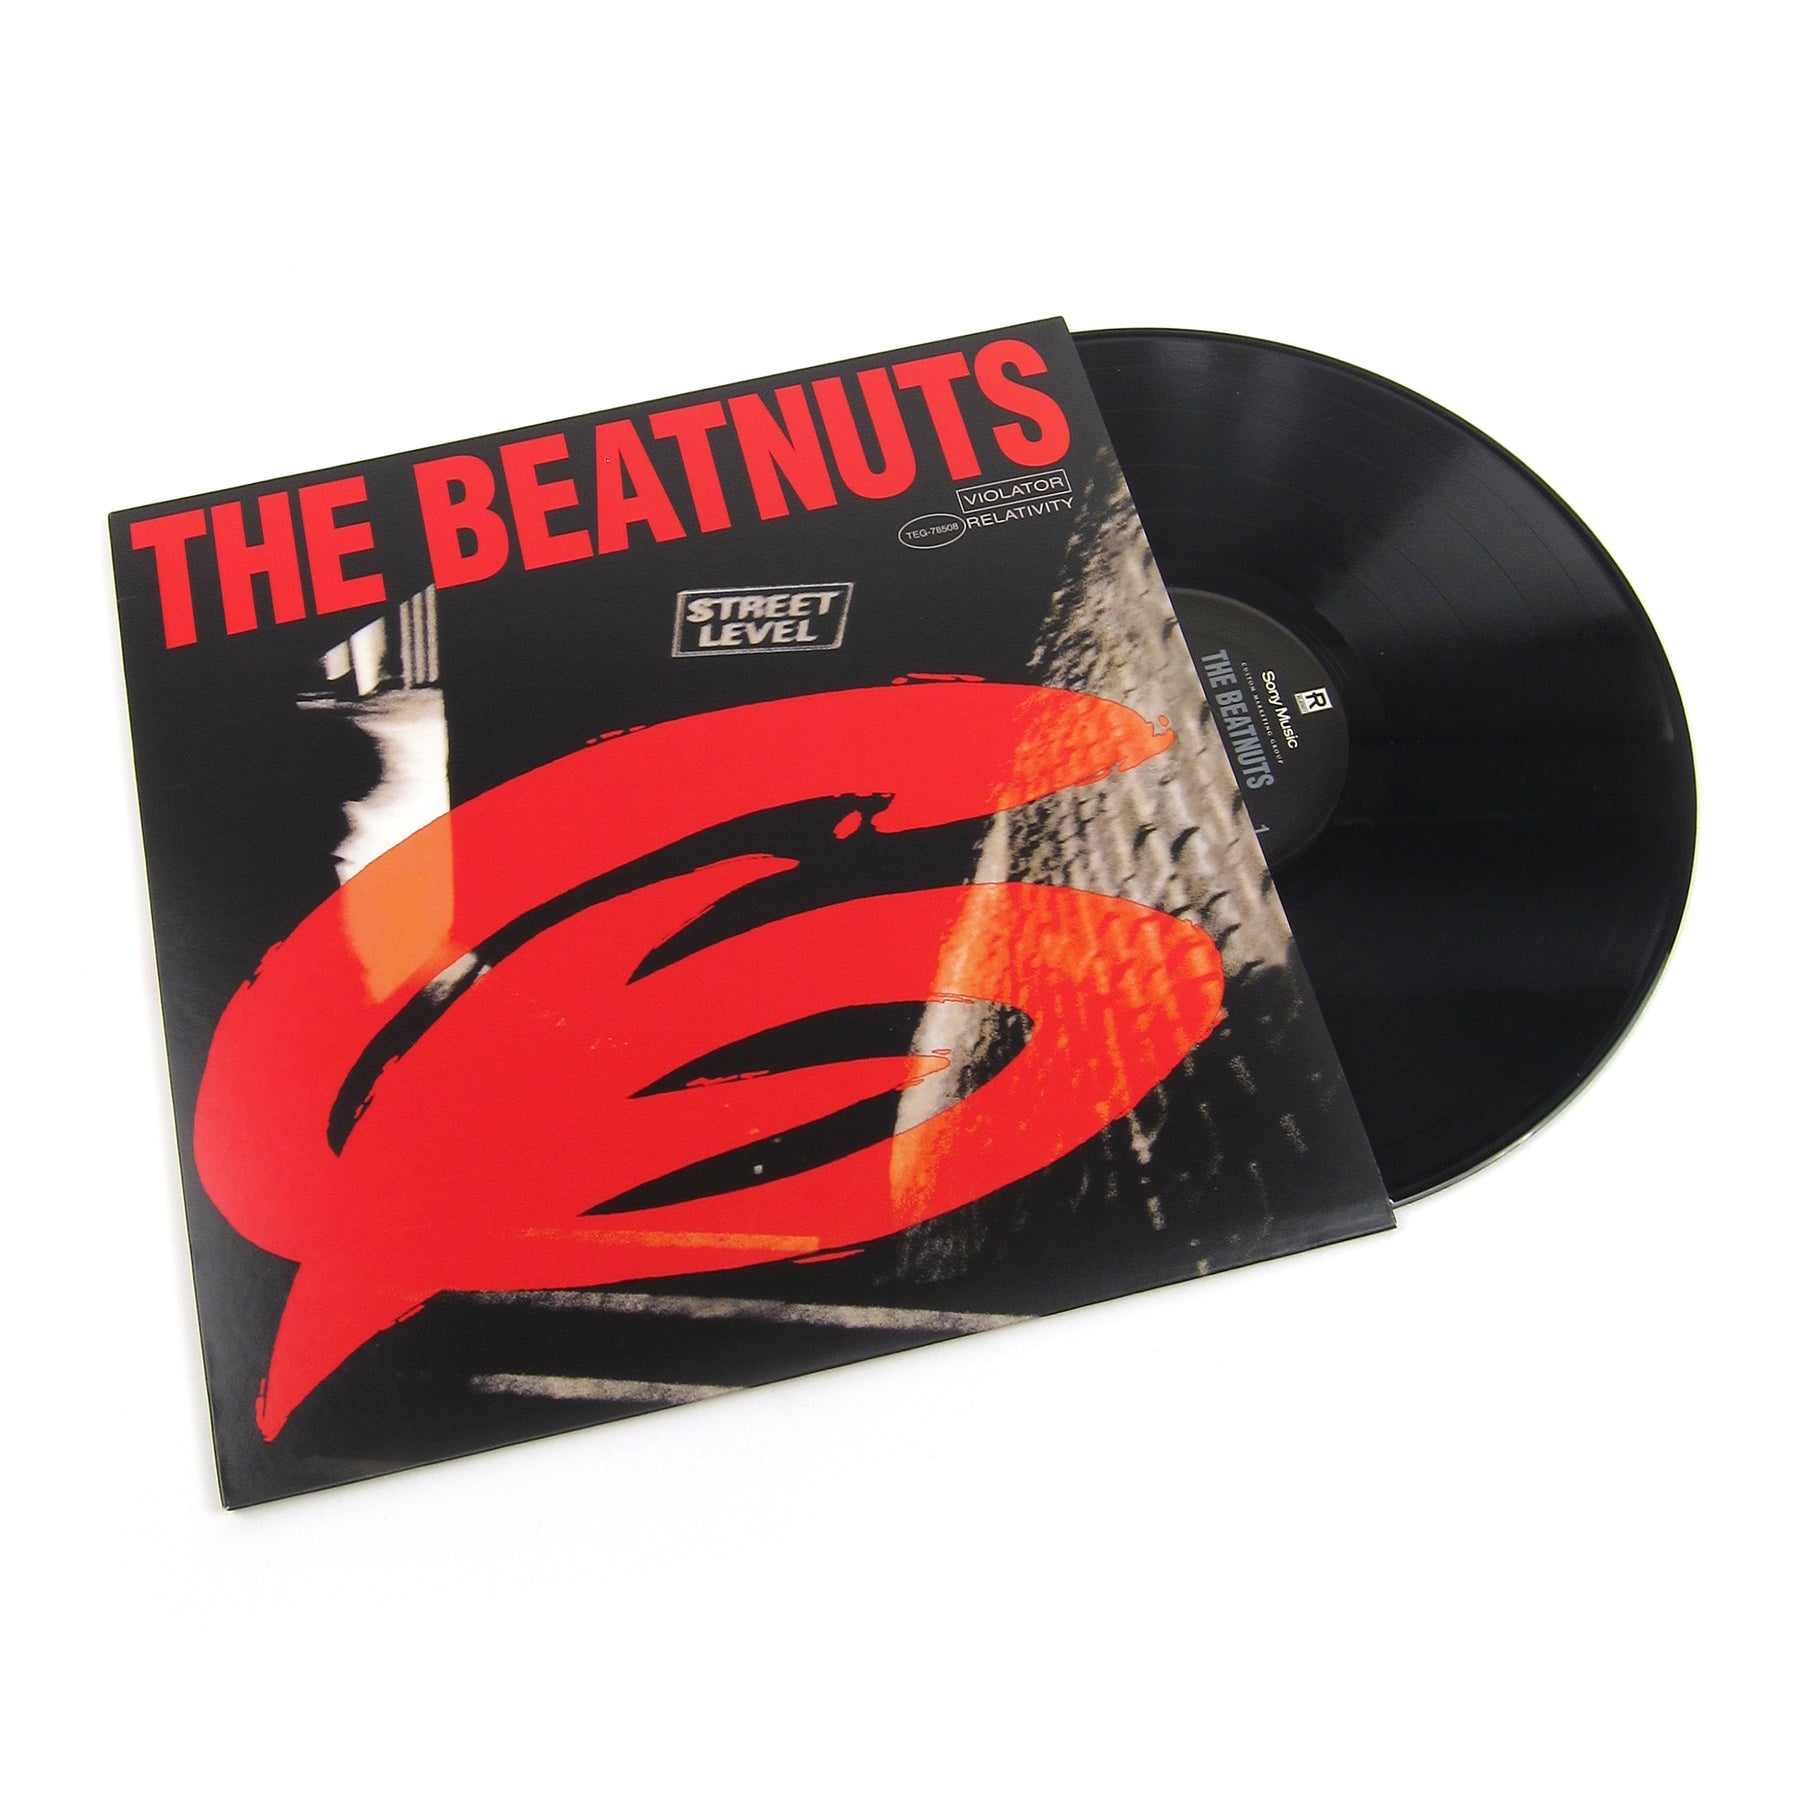 Confirm. lick the beatnuts are absolutely